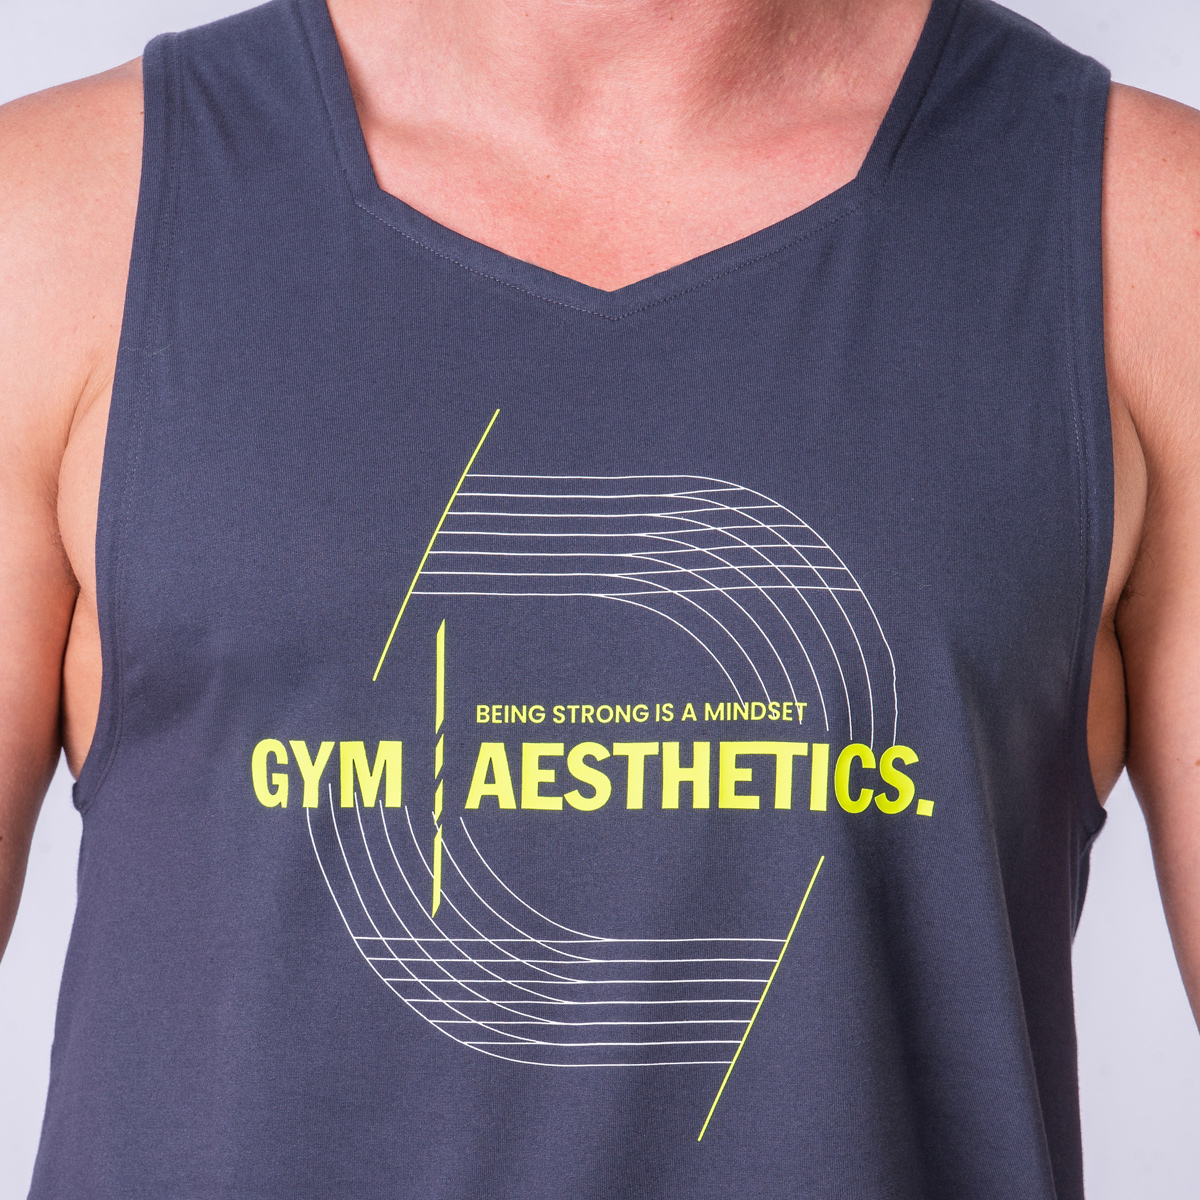 Essential Cotton Touch Gym Stringer for Men in Charcoal | Gym Aesthetics